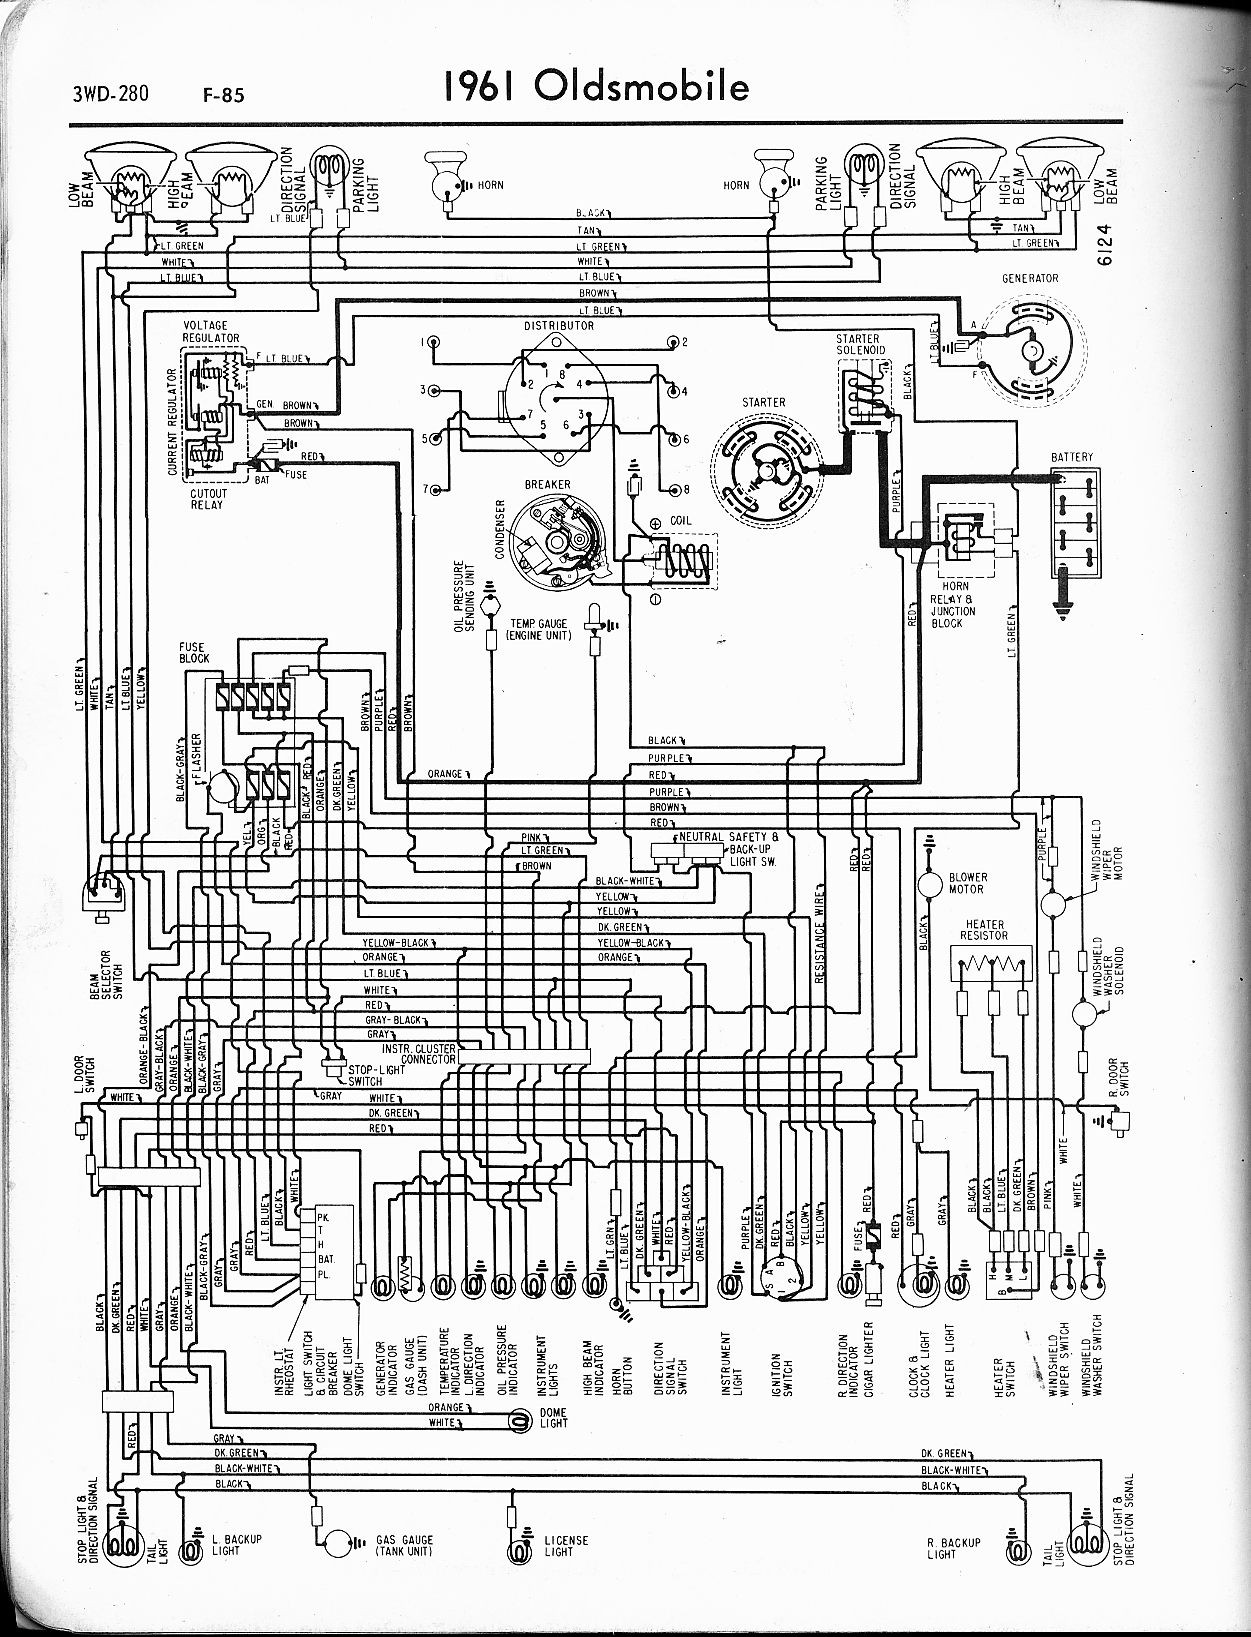 oldsmobile cutlass supreme wiring diagram wire center u2022 rh insurapro co wiring diagram 94 oldsmobile cutlass supreme 94 Cutlass Supreme Convertible